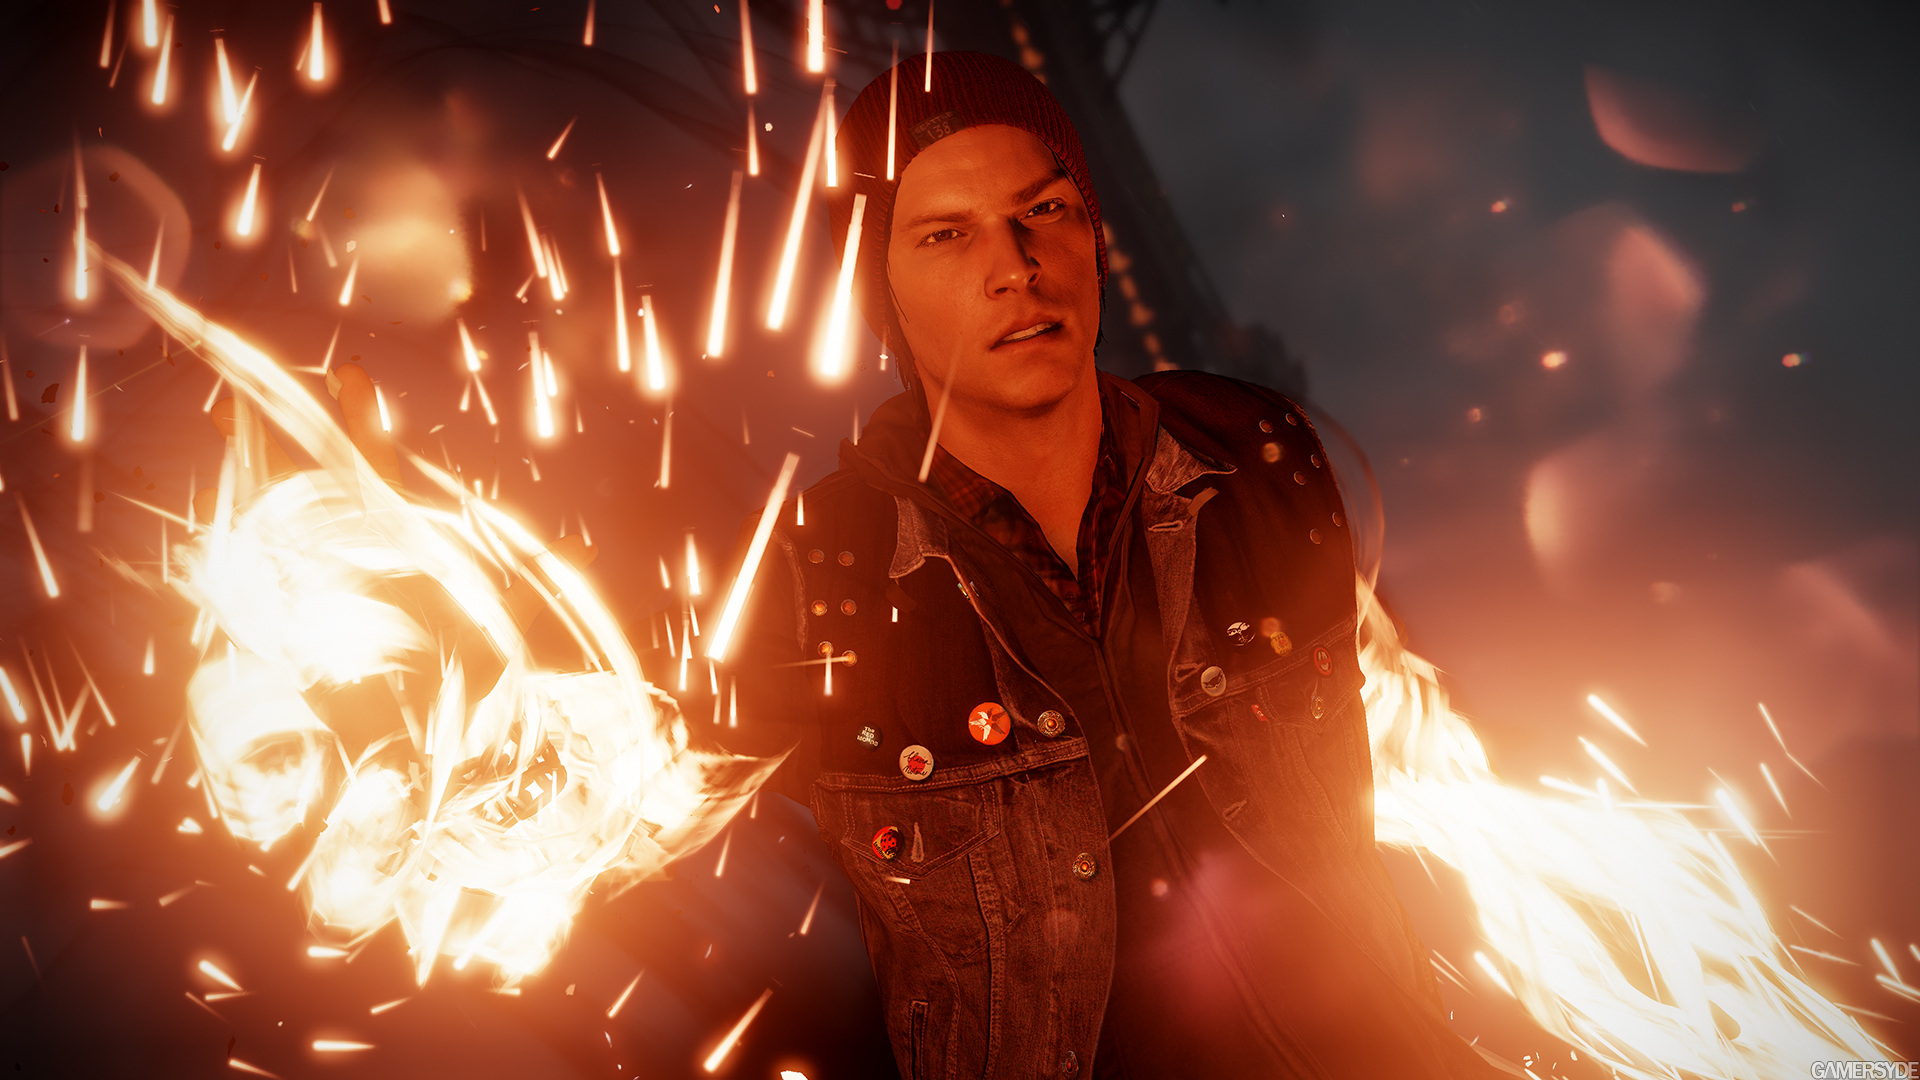 image_infamous_second_son-22858-2661_000